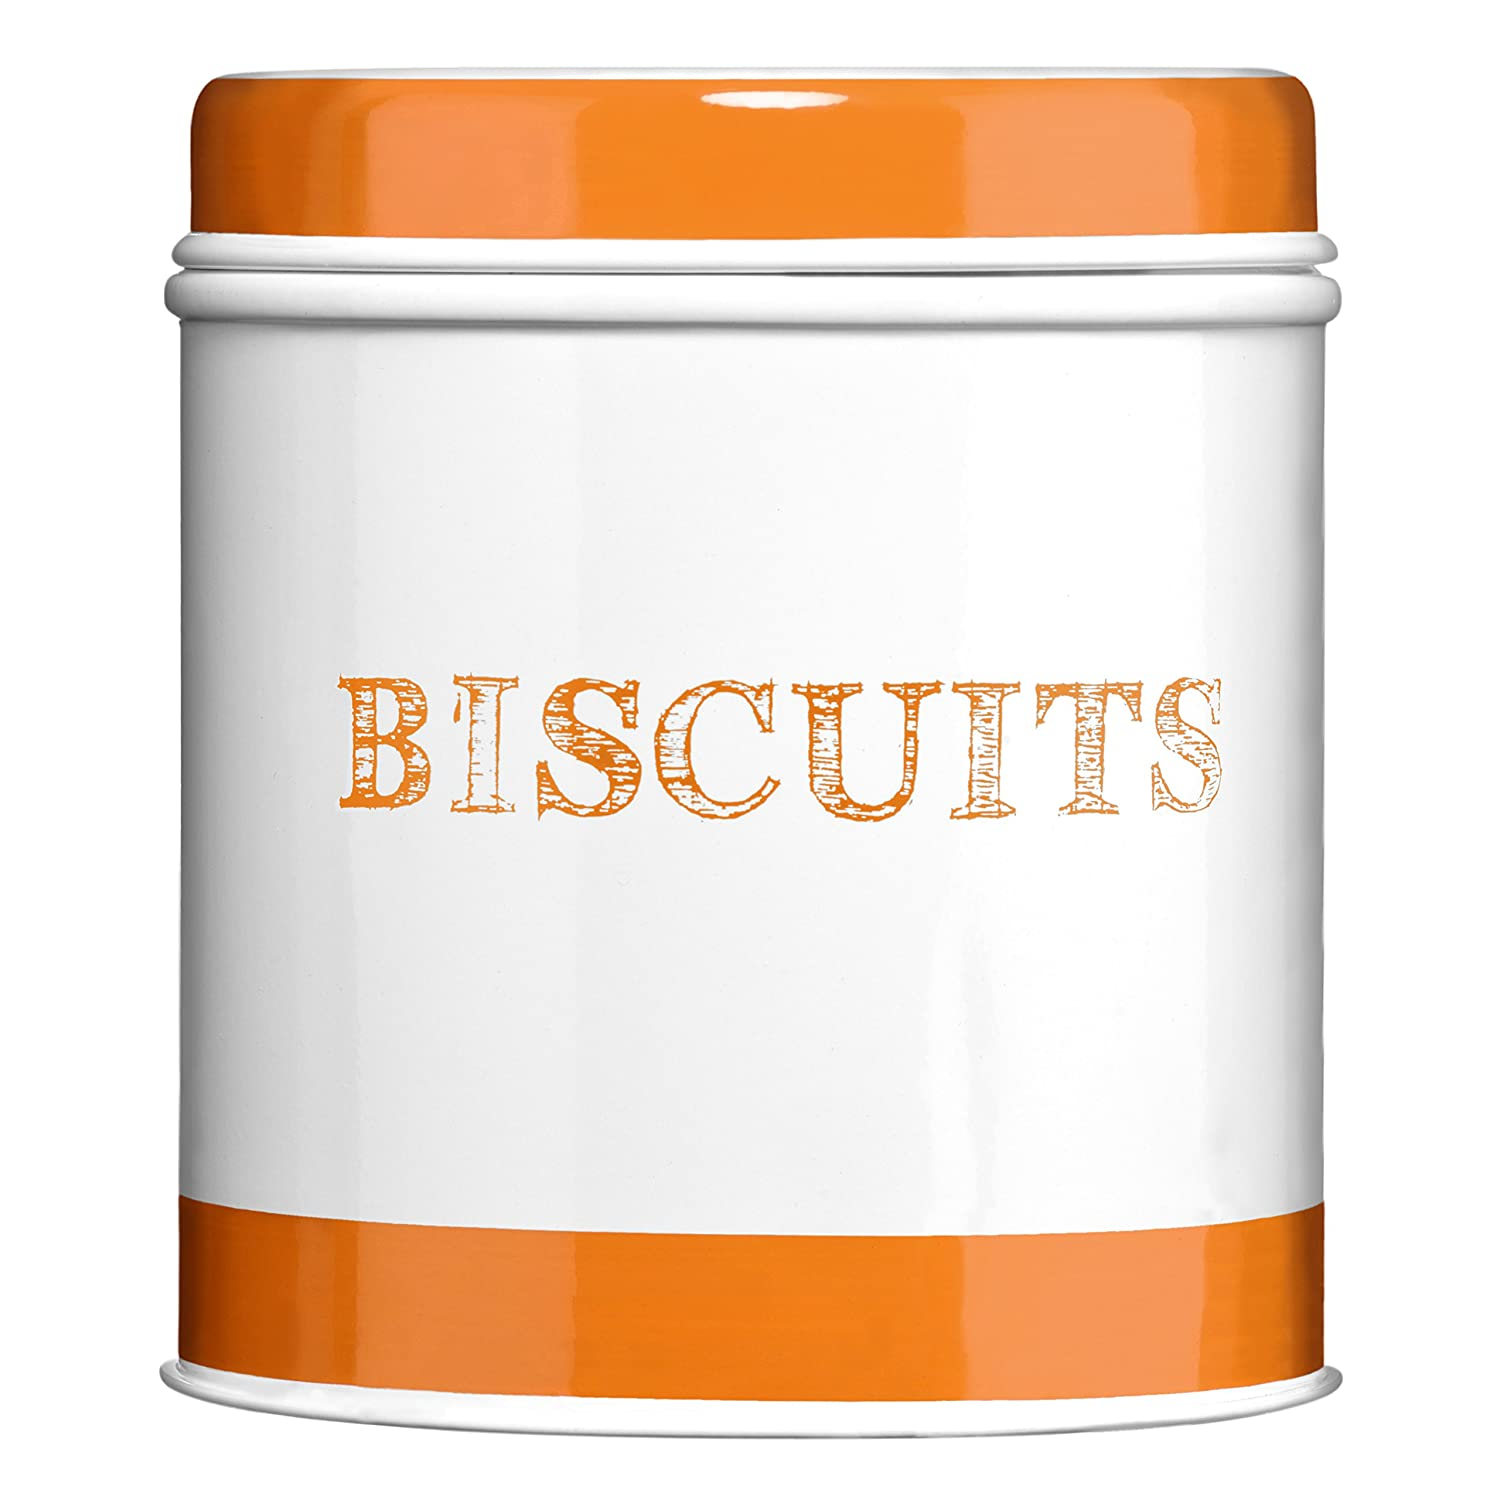 Premier Housewares Band Biscuit Canister - Green 0507926